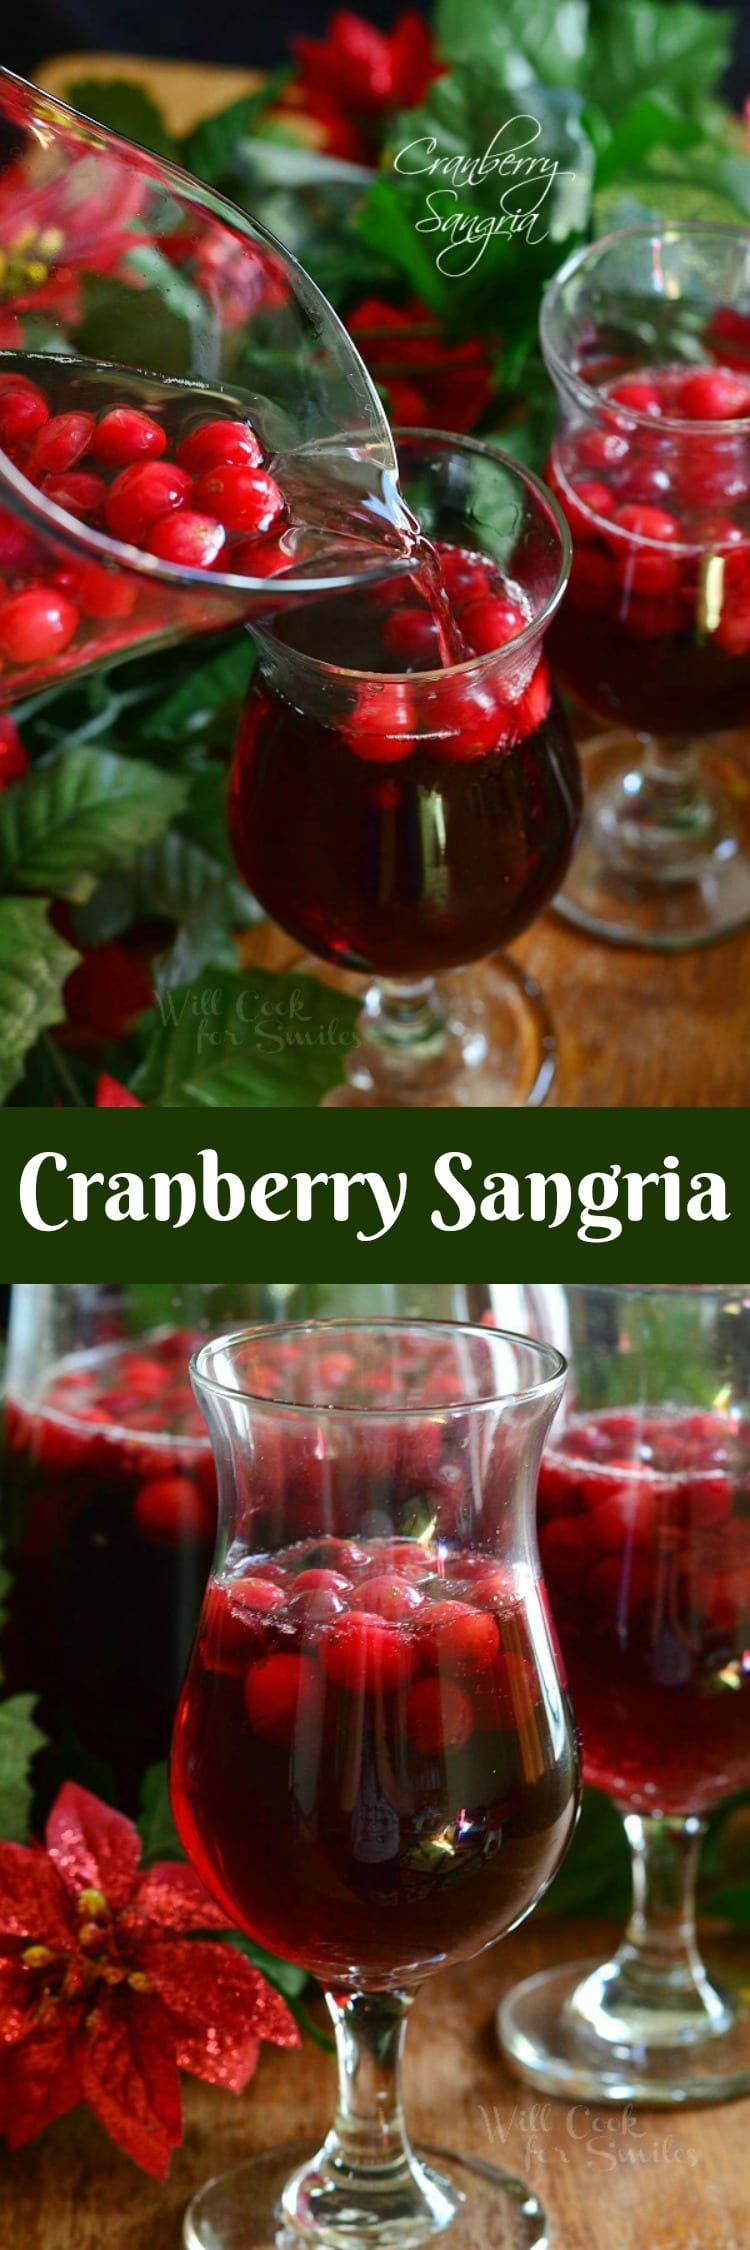 Cranberry Sangria is perfect for this holiday season. Delicious seasonal cocktail made with fresh cranberries, cranberry flavored vodka, juice and red wine. #sangria #cranberry #holidaydrink #cocktail